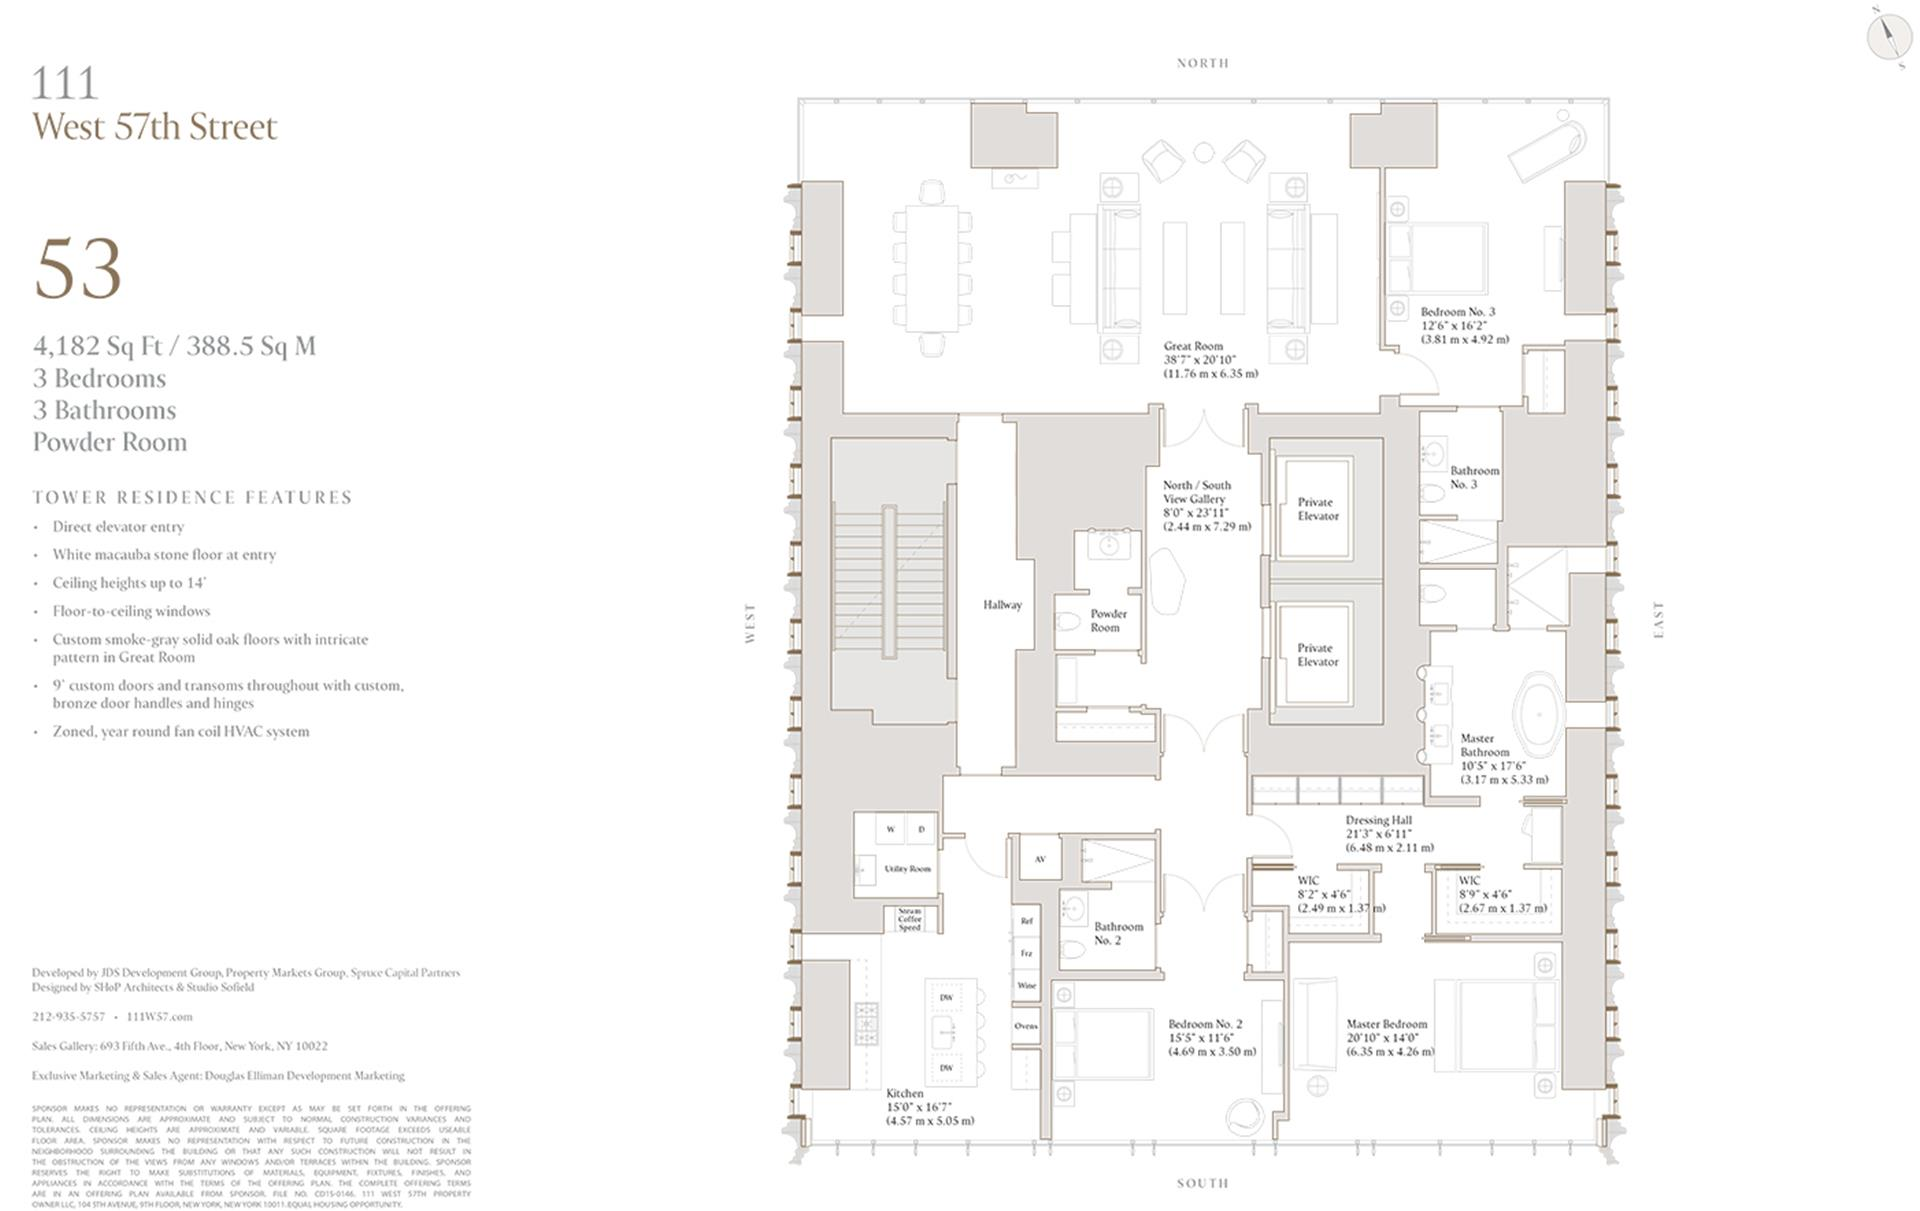 Floor plan of 111 West 57th St, 53 - Central Park South, New York